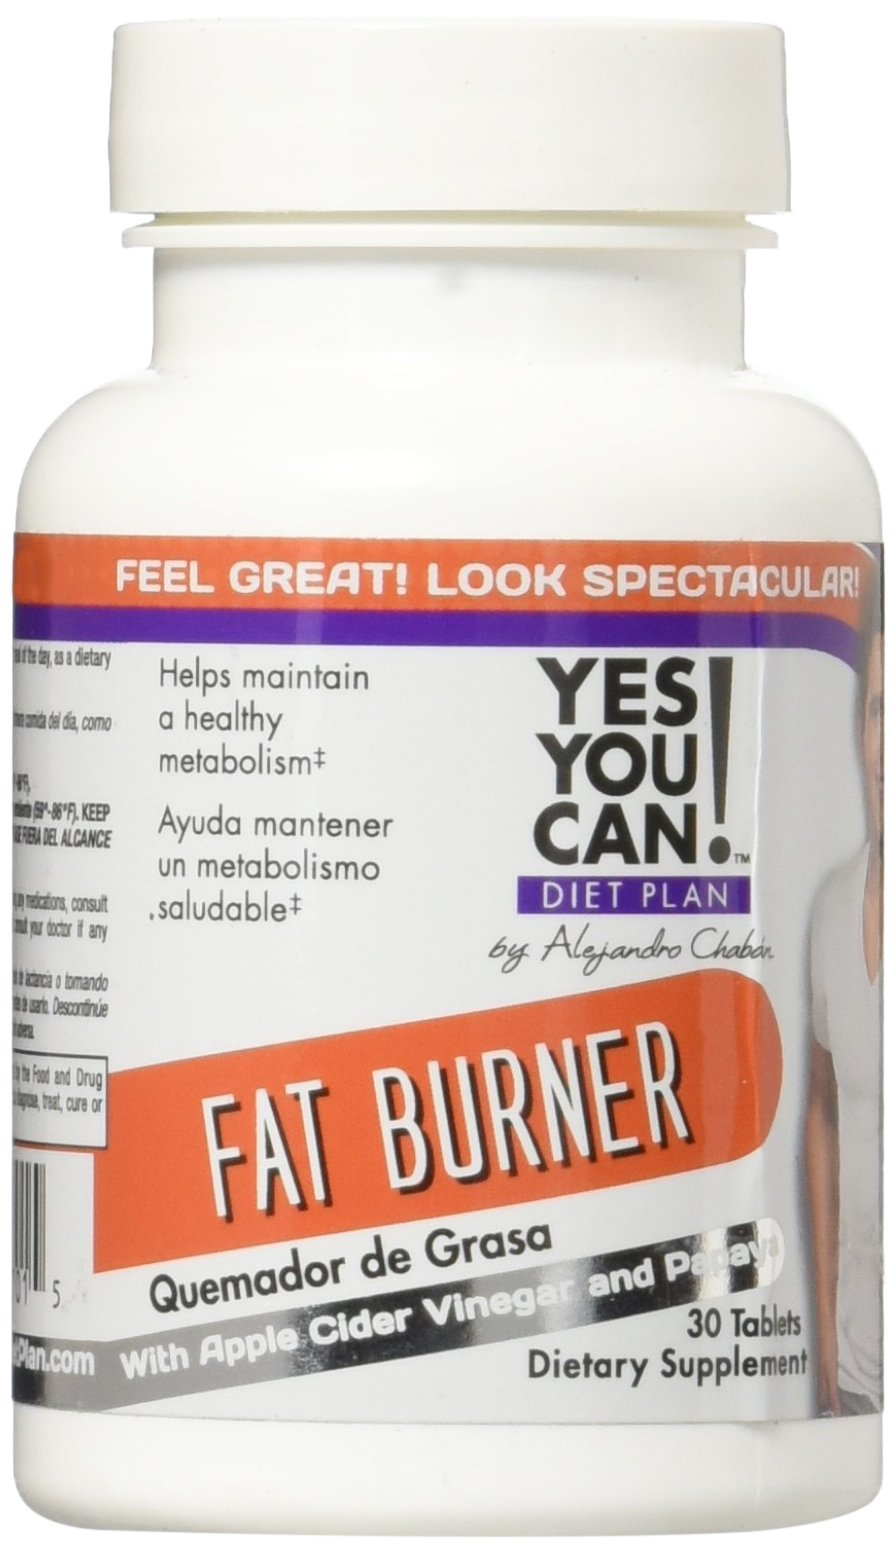 YES YOU CAN DIET PLAN - Fat Burner Weight Loss Supplement with Apple Cider Vinegar,